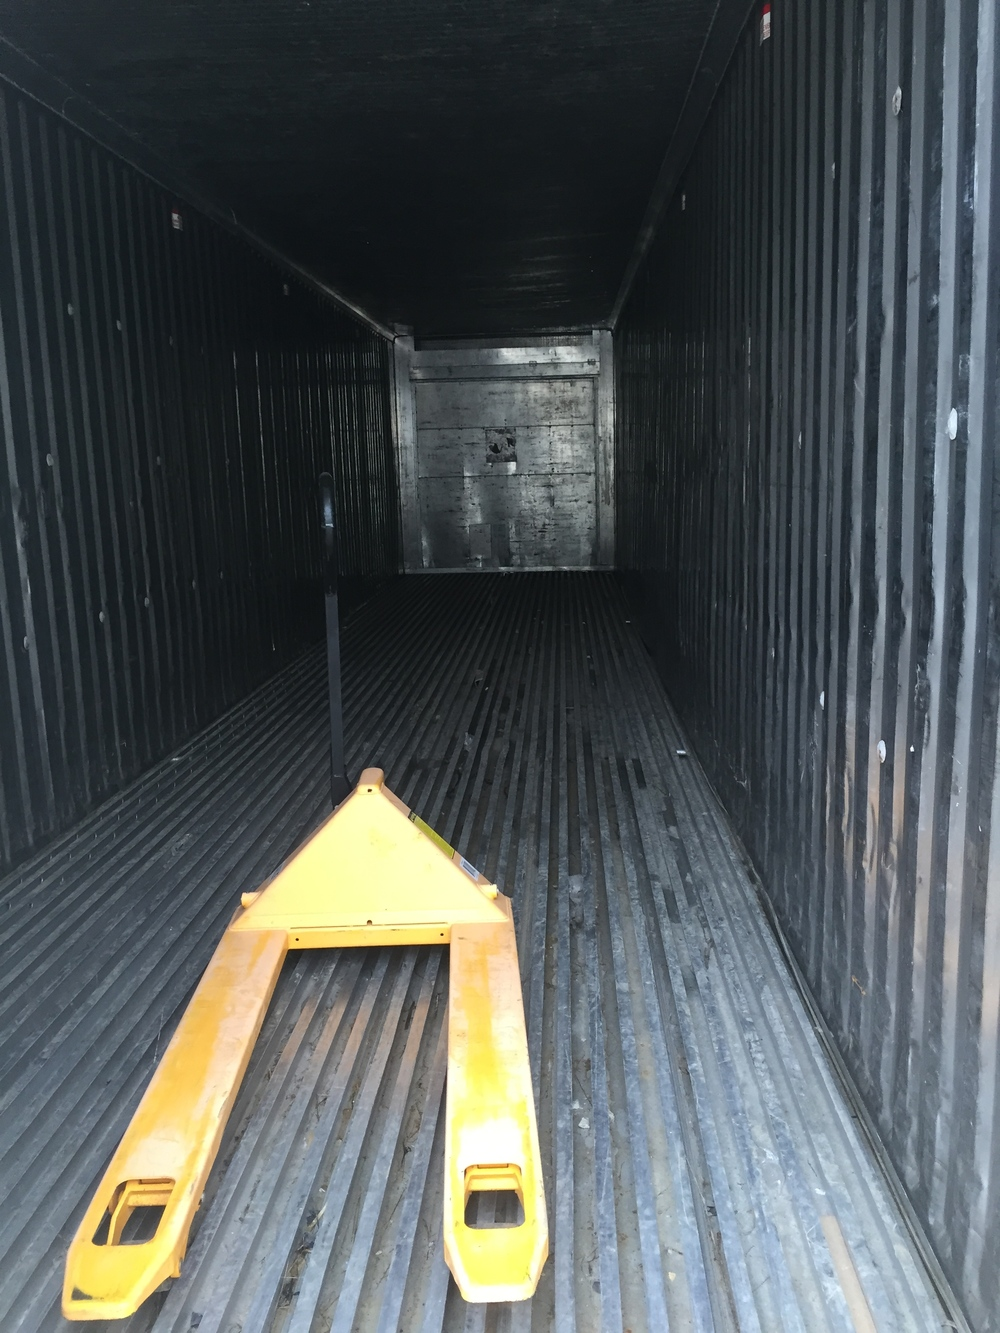 Inside of a container